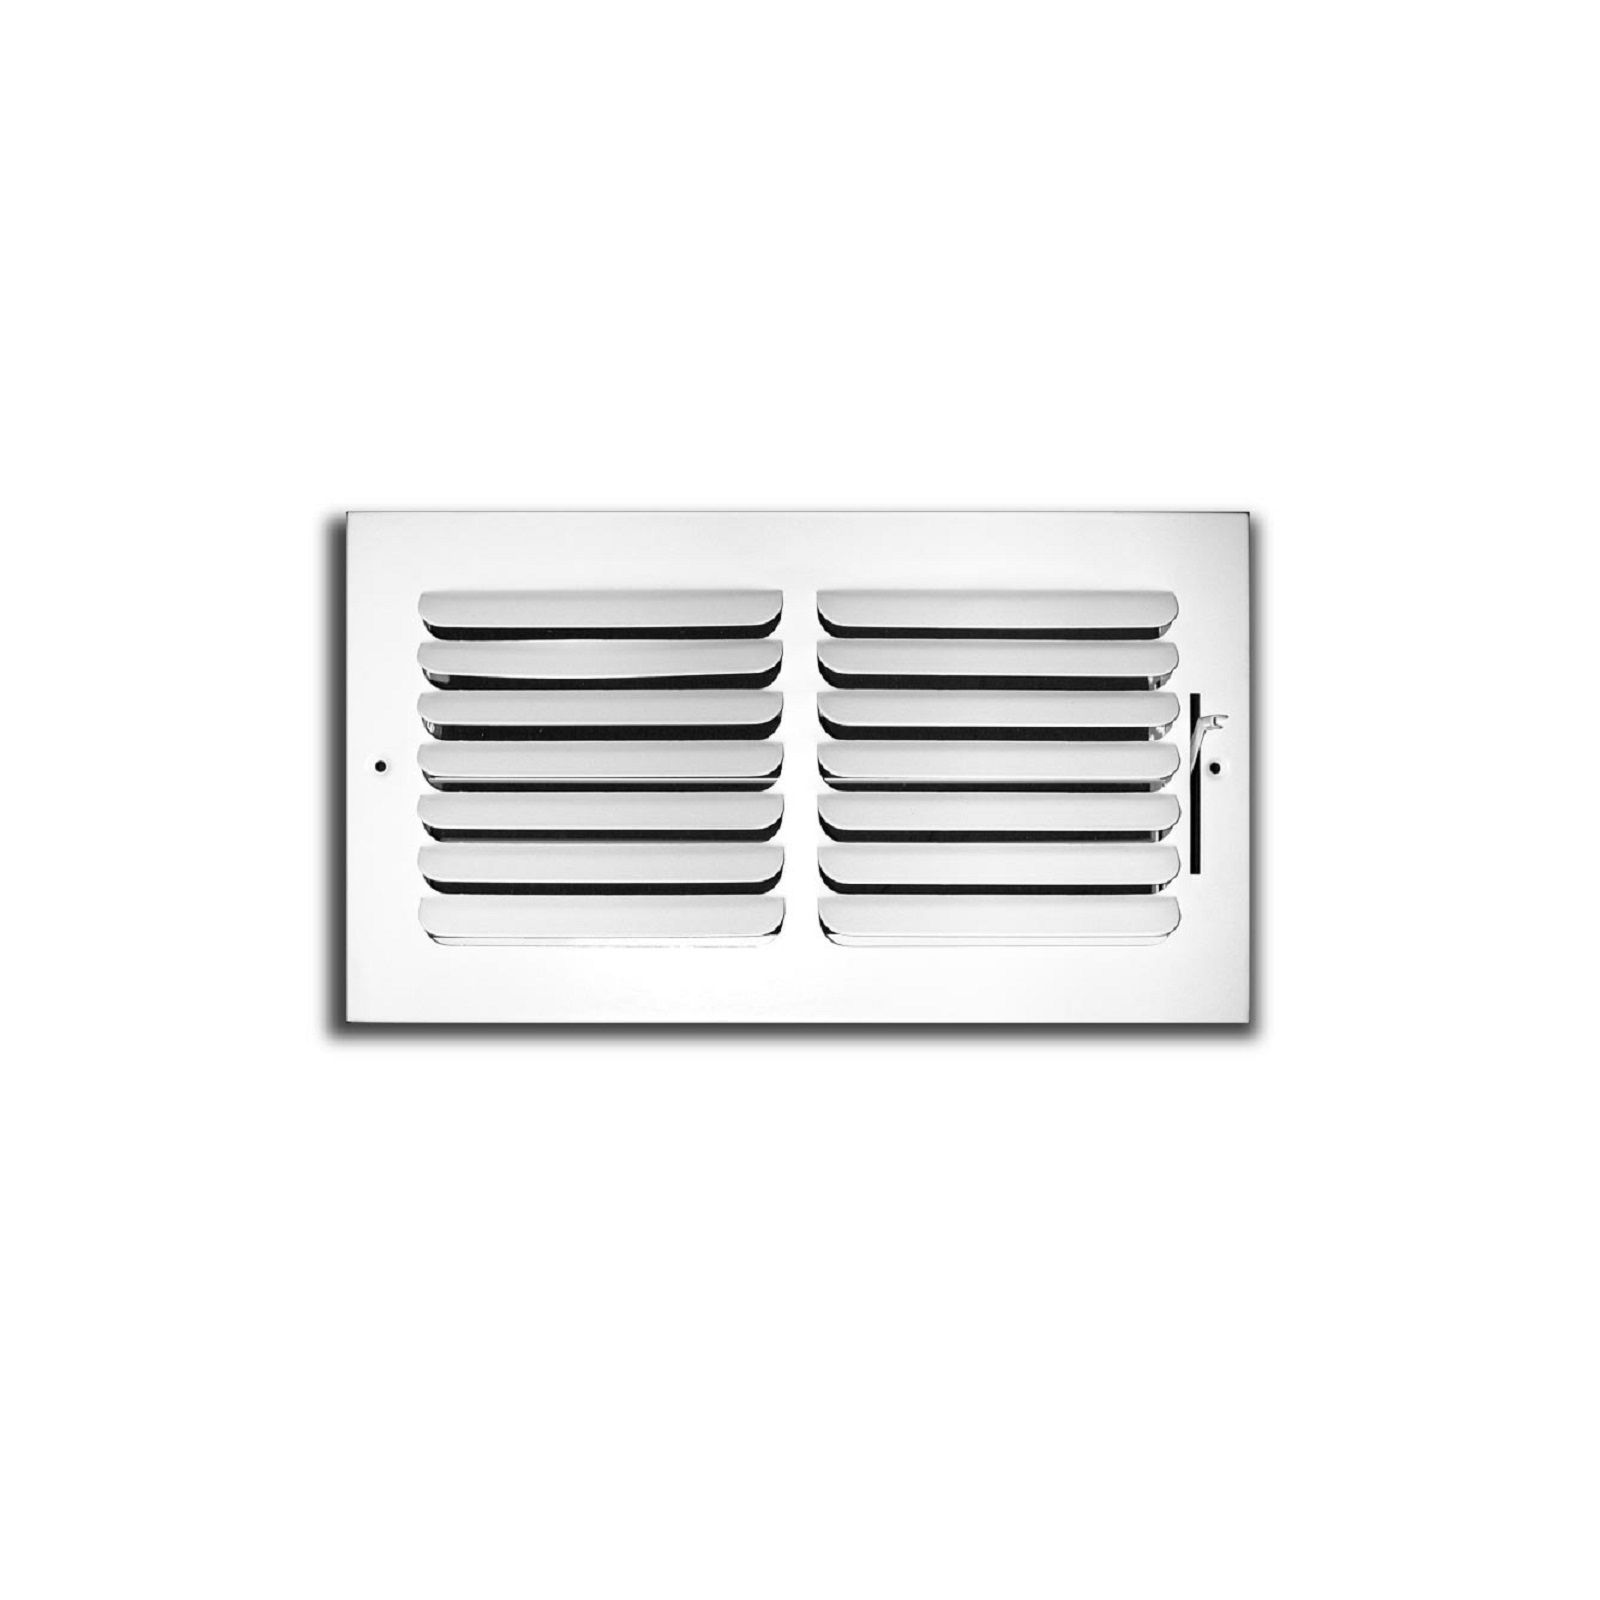 "TRUaire 401M 10X06 - Fixed Curved Blade Wall/Ceiling Register 401M With Multi Shutter Damper, 1-Way, White, 10"" X 06"""